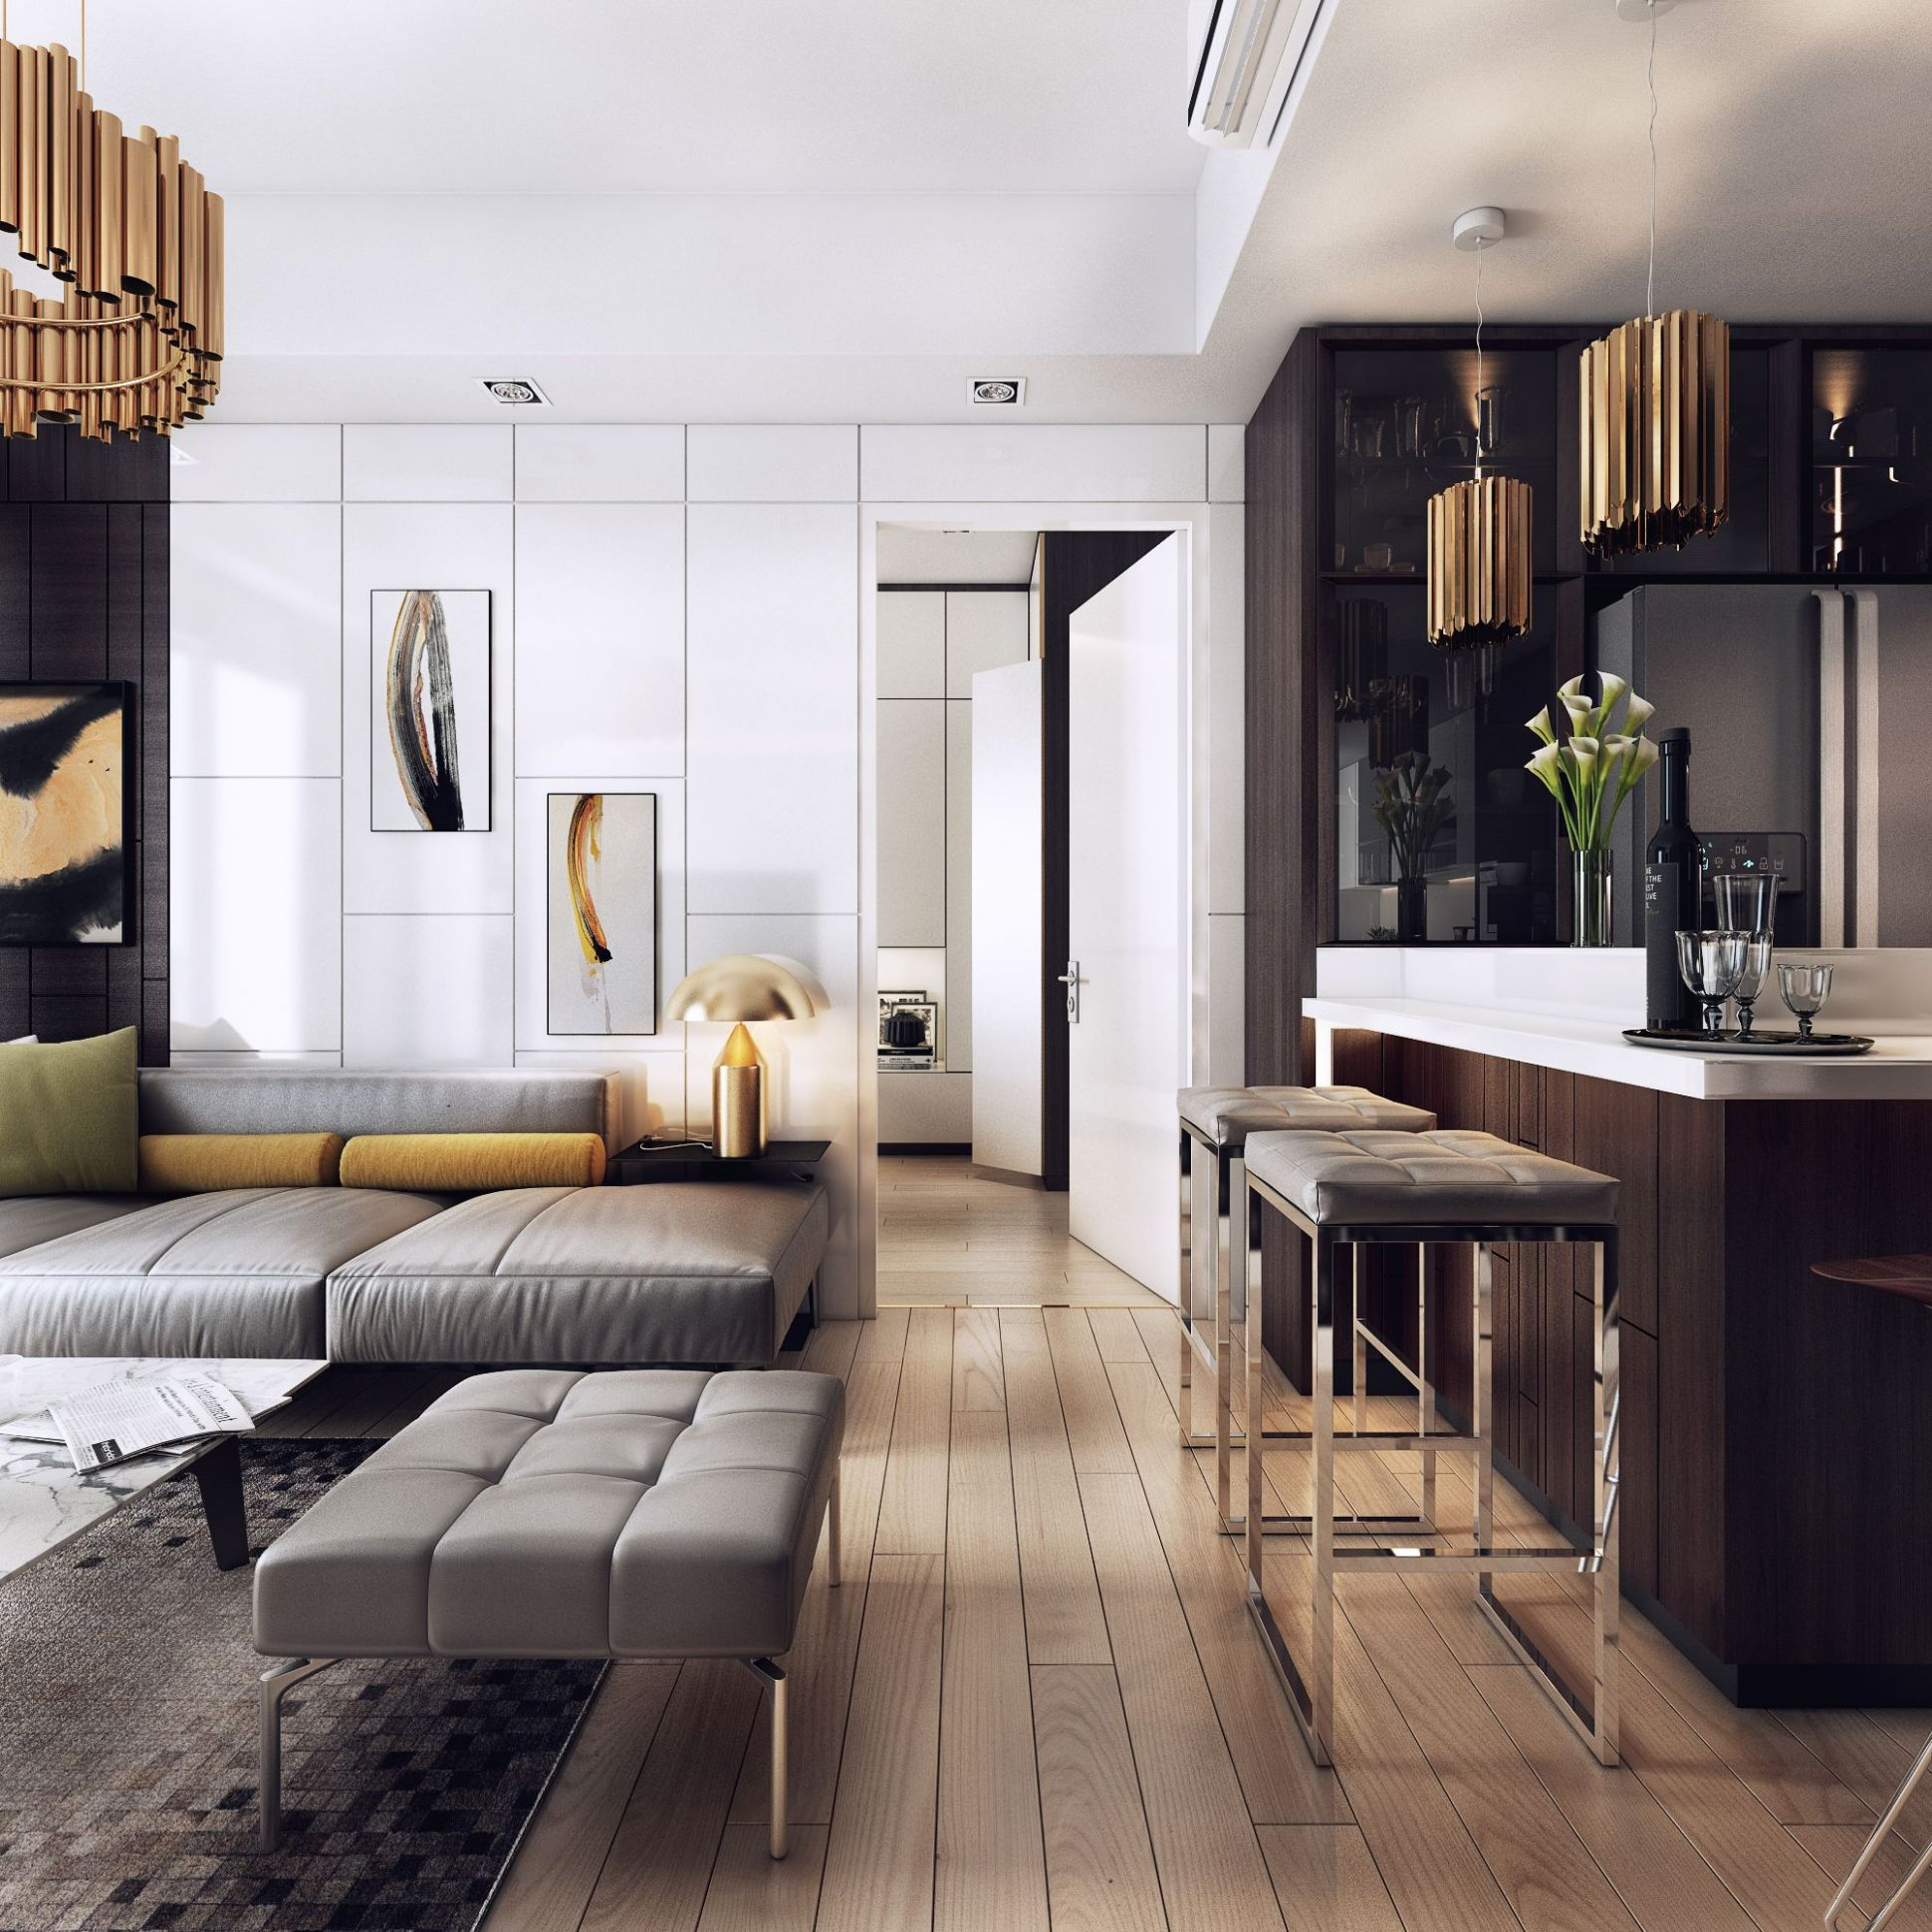 I really like the apartments of this type, with the space there is ...